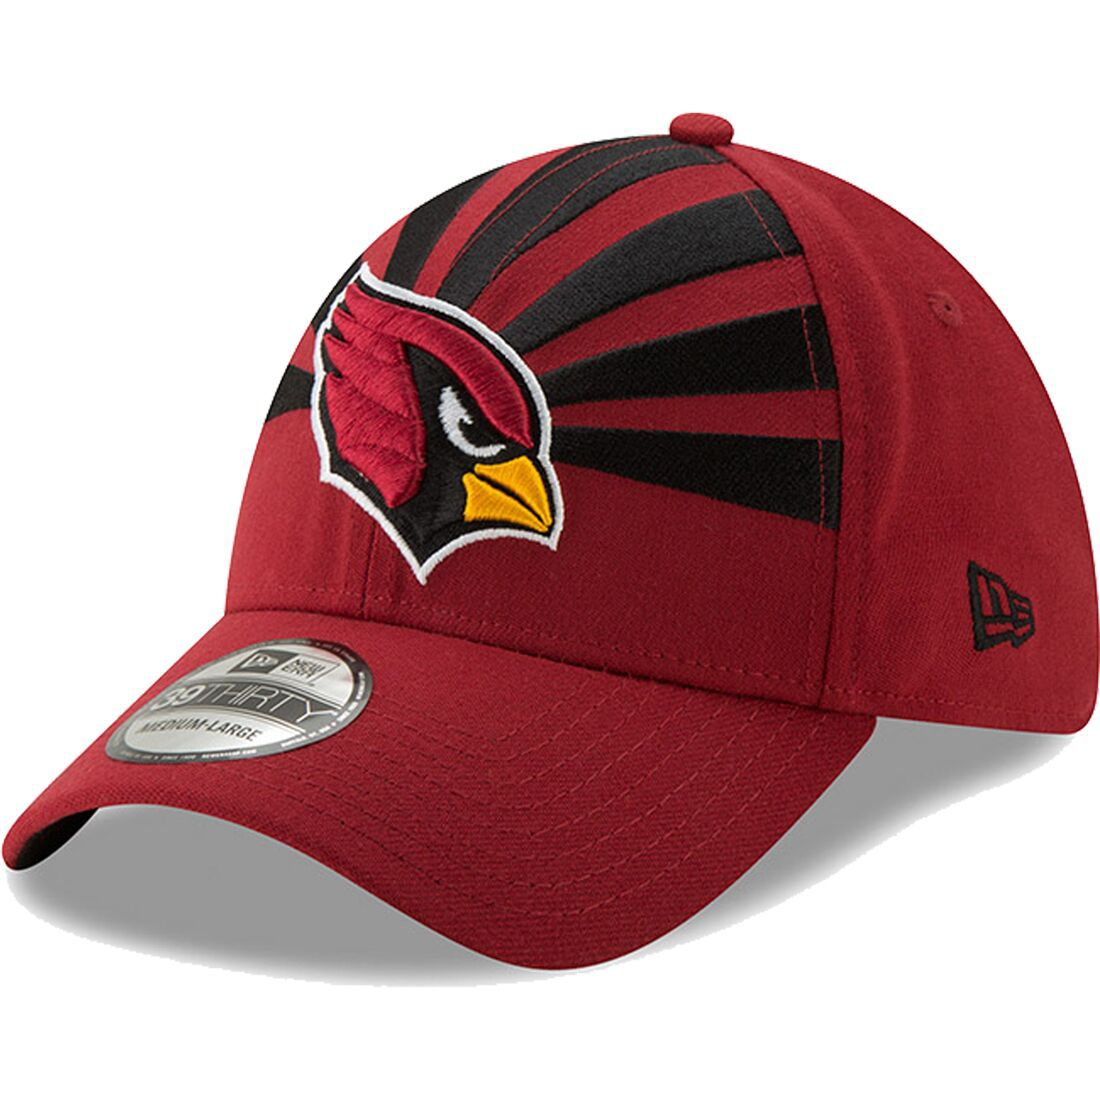 9f92d2624441e3 Arizona Cardinals New Era 2019 On Stage Official 39THIRTY Hat for $31.99  Fanatics